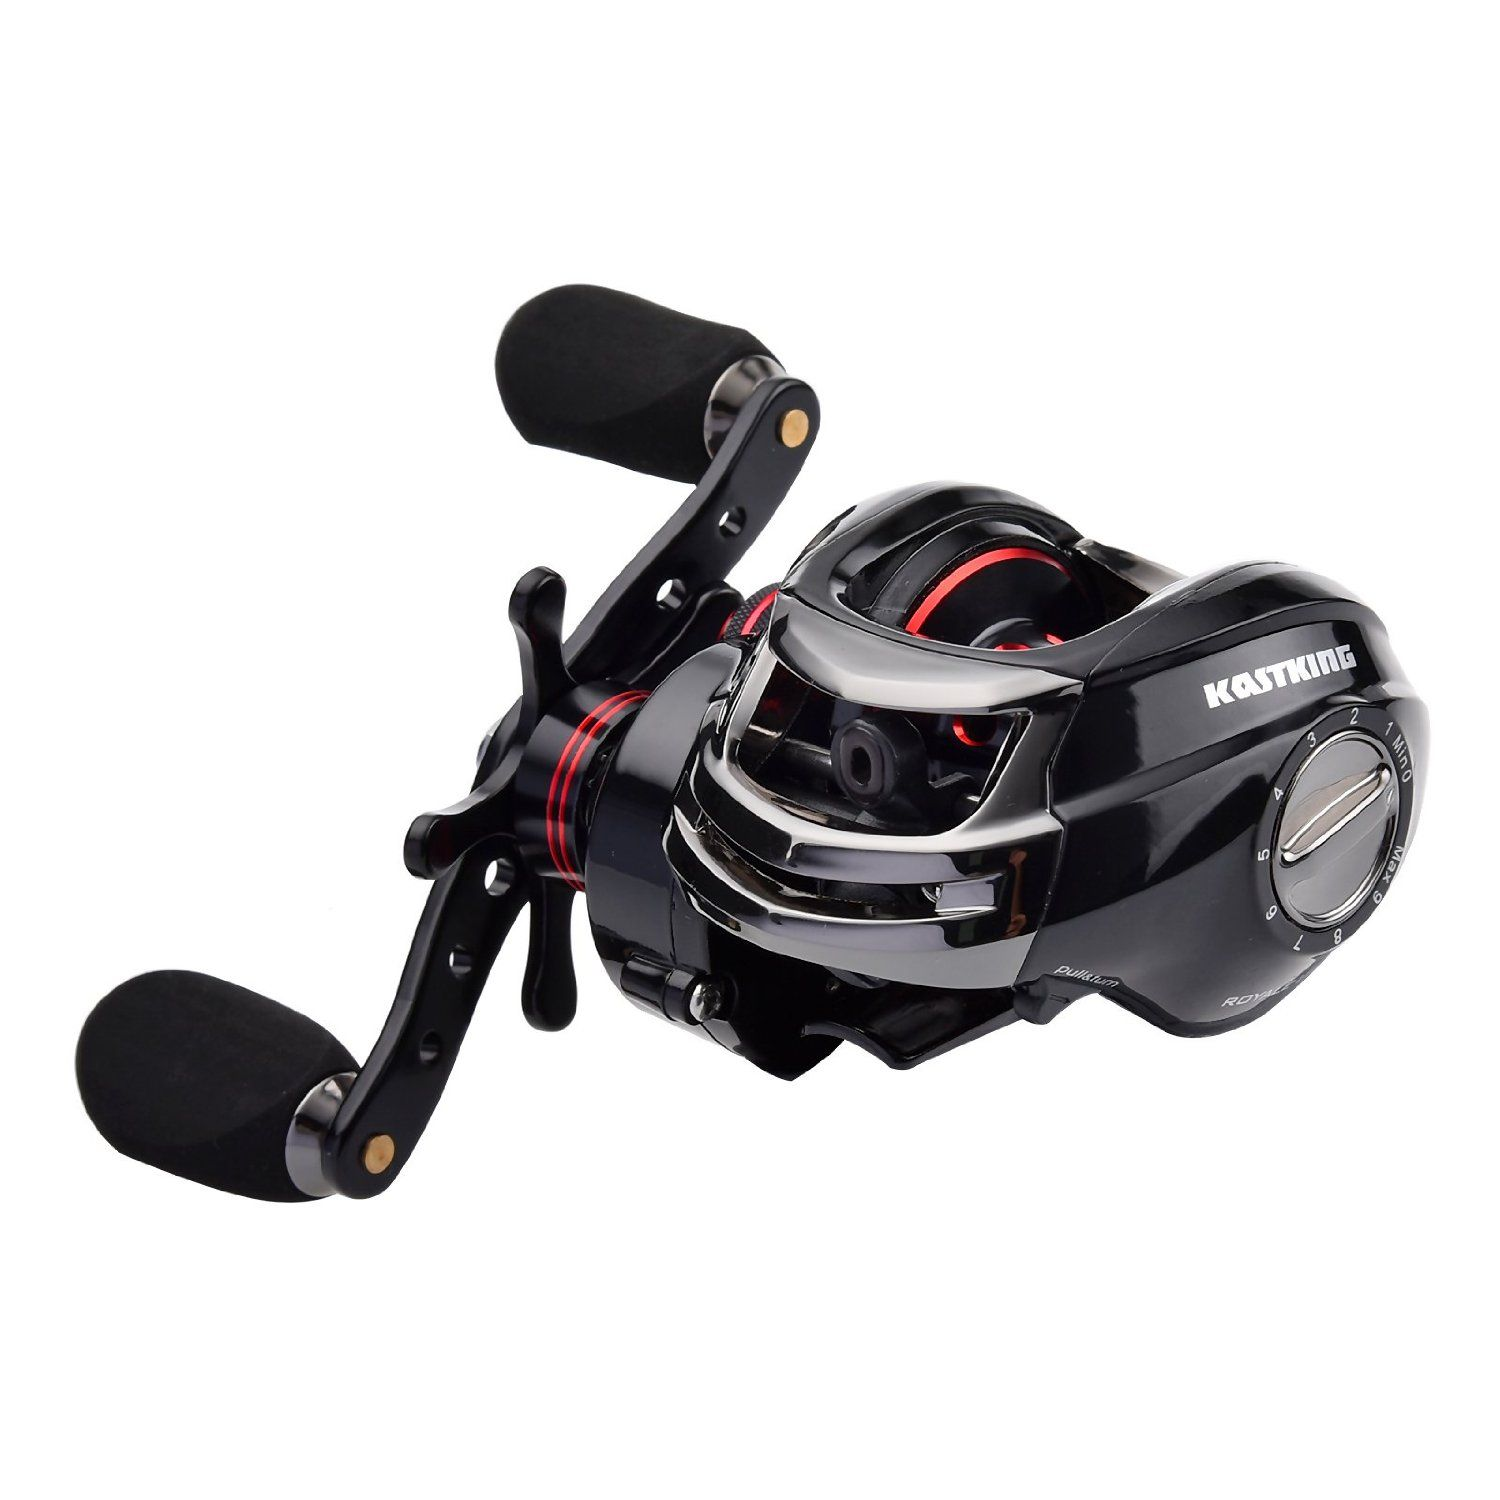 KastKing Royale Legend High Speed (7.0 :1) Low Profile Baitcasting Fishing Reel